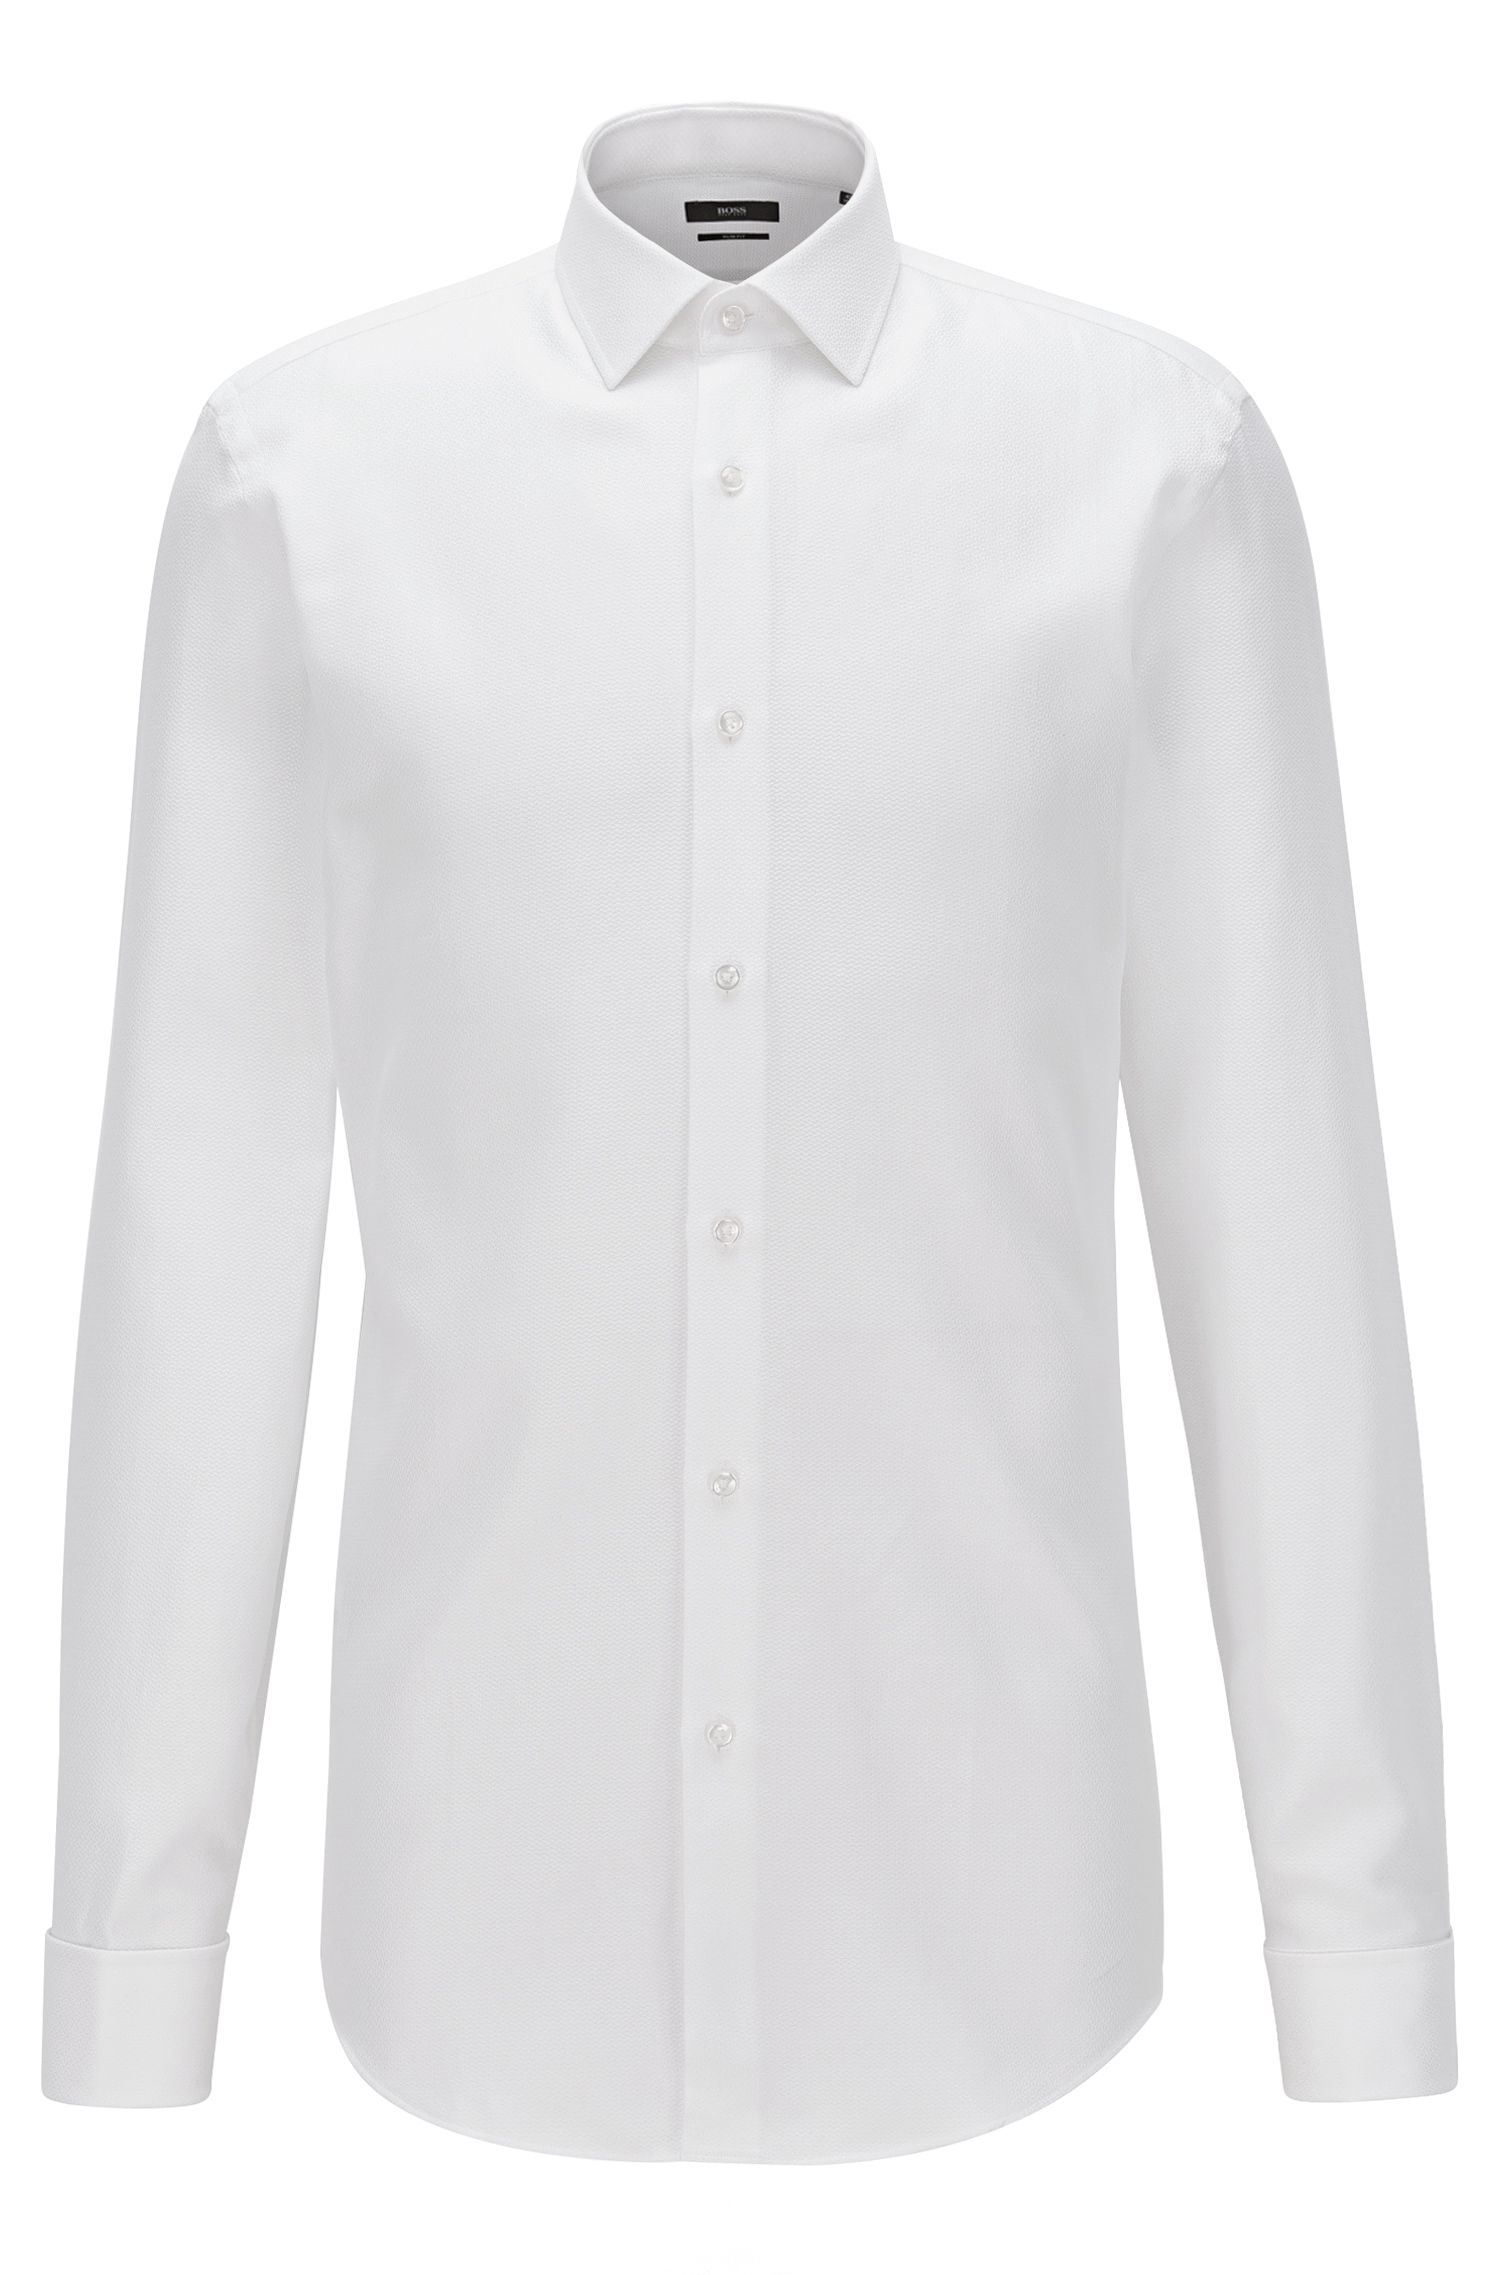 Slim-fit shirt in patterned cotton with double cuffs